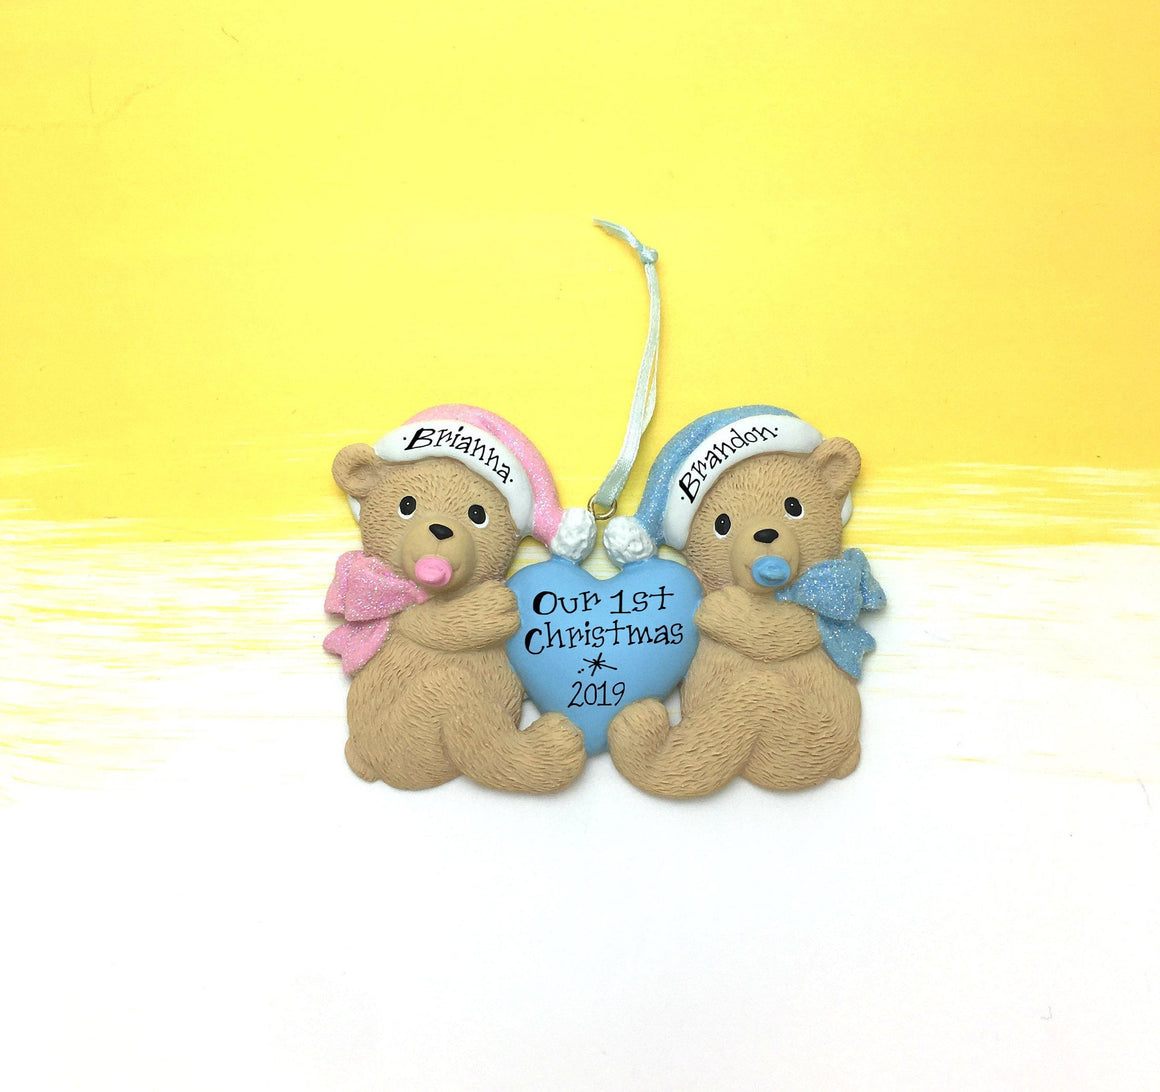 Baby Bear Twins First Christmas Ornament / Twins / Girl & Boy / Teddy Bears / Personalized Baby Ornament / Personalized Ornament / Baby Gift